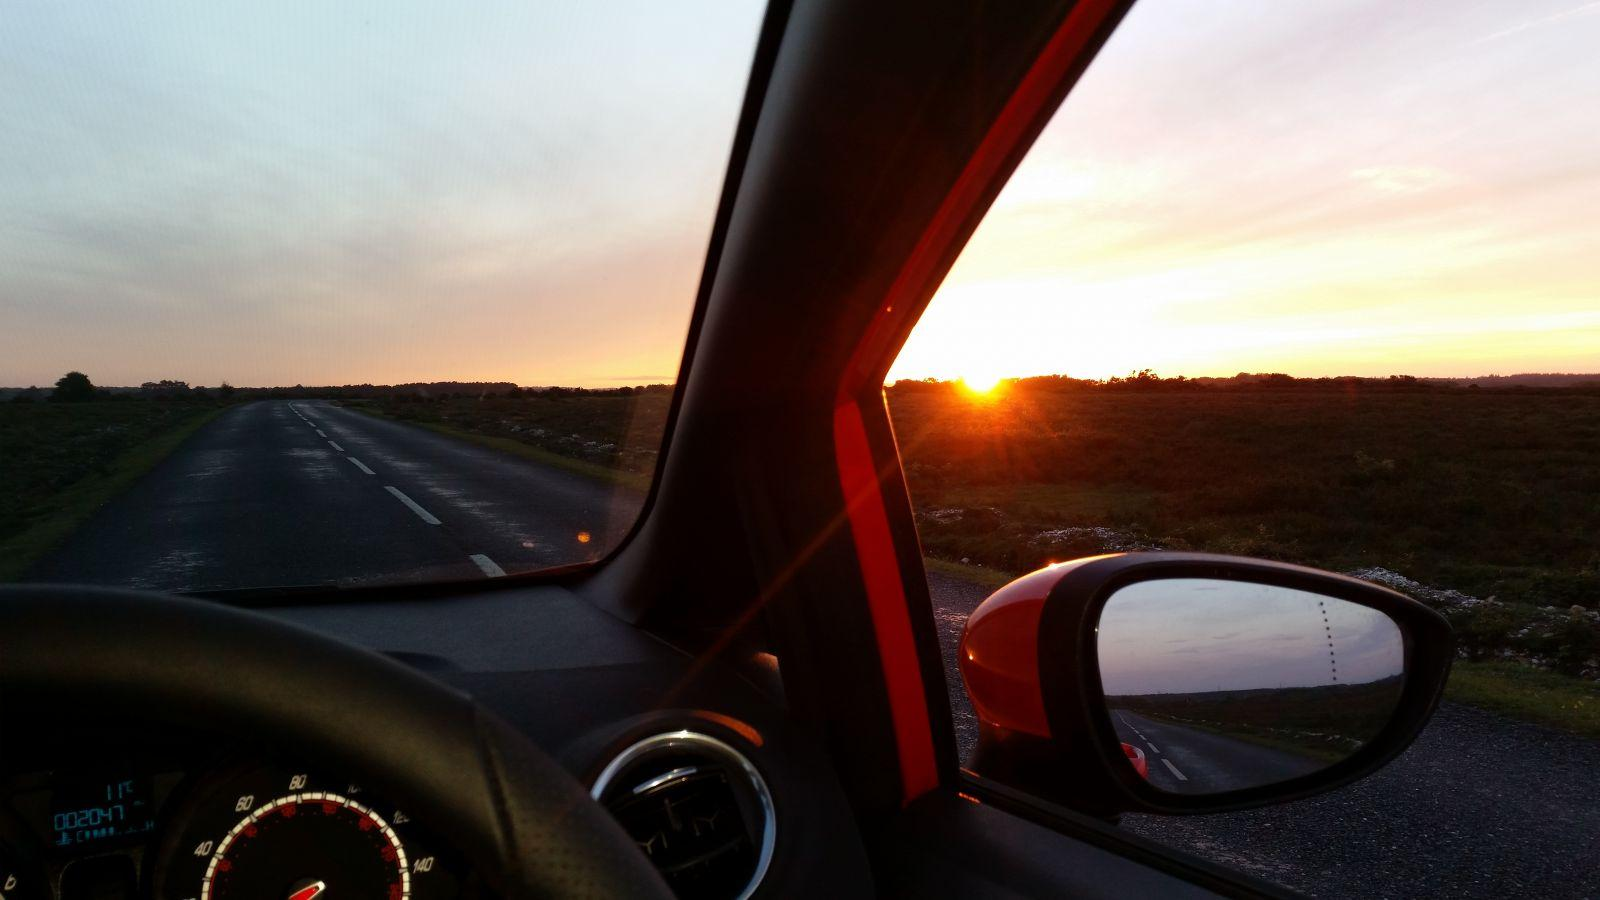 Evening drive across the forest